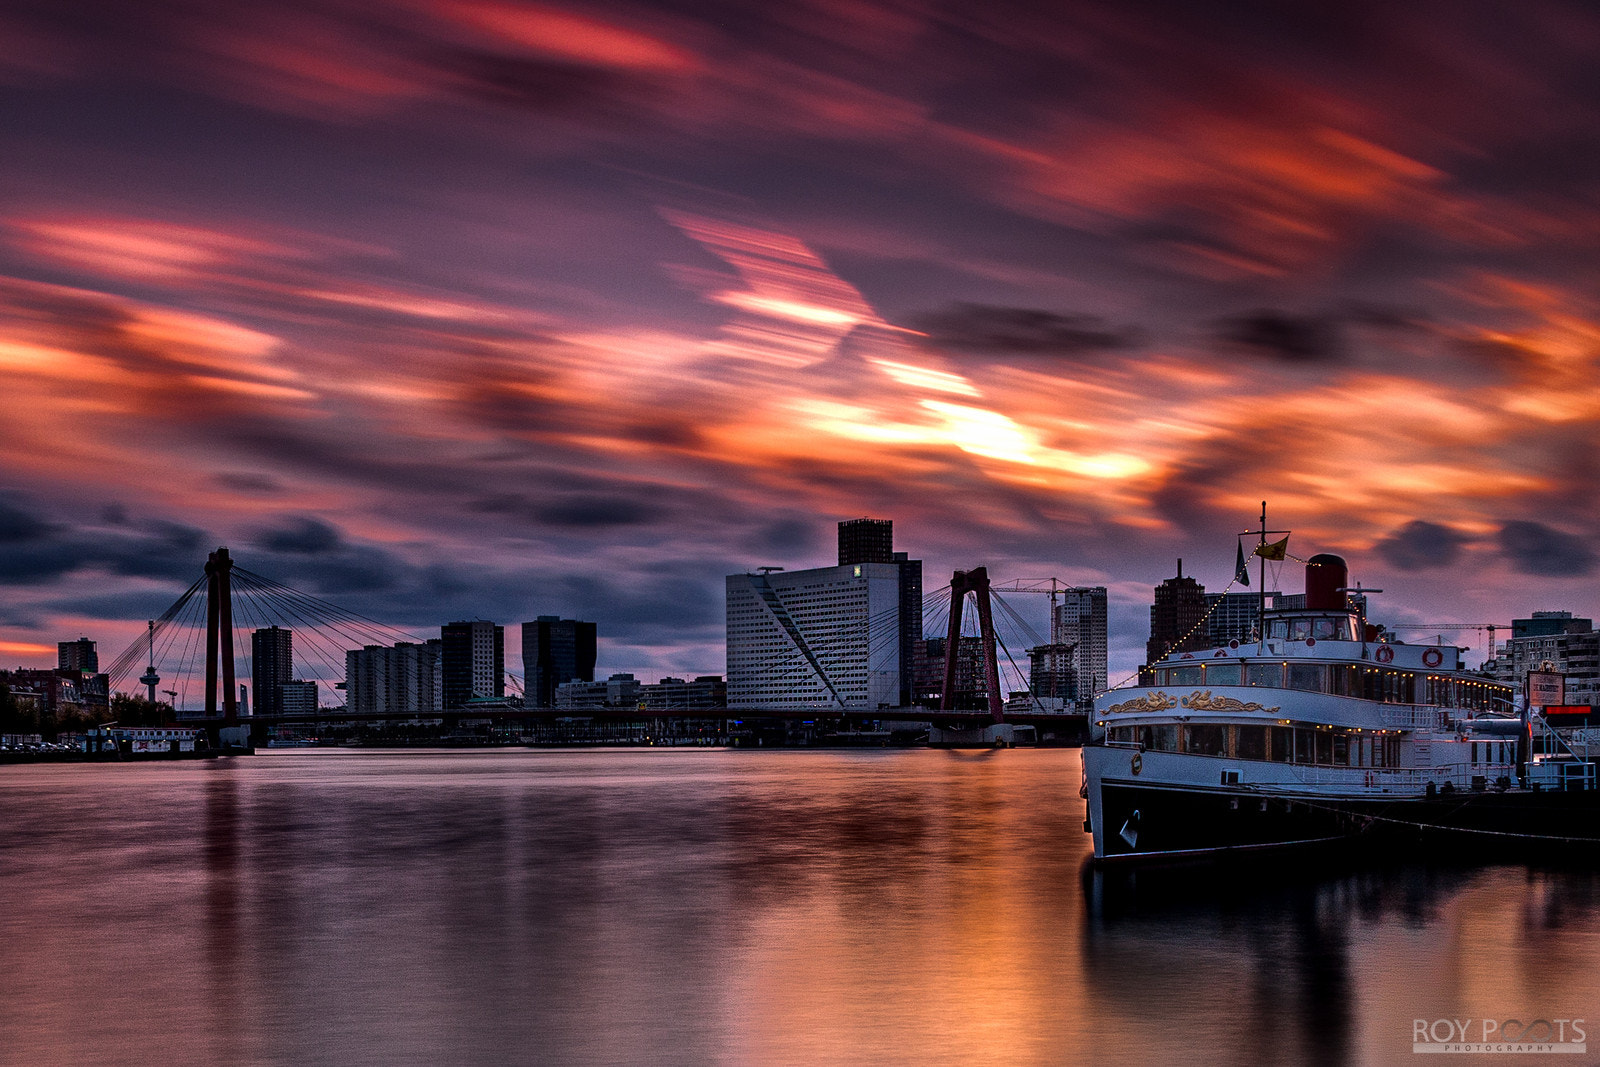 Photograph Rotterdam sunset by Roy Zz on 500px